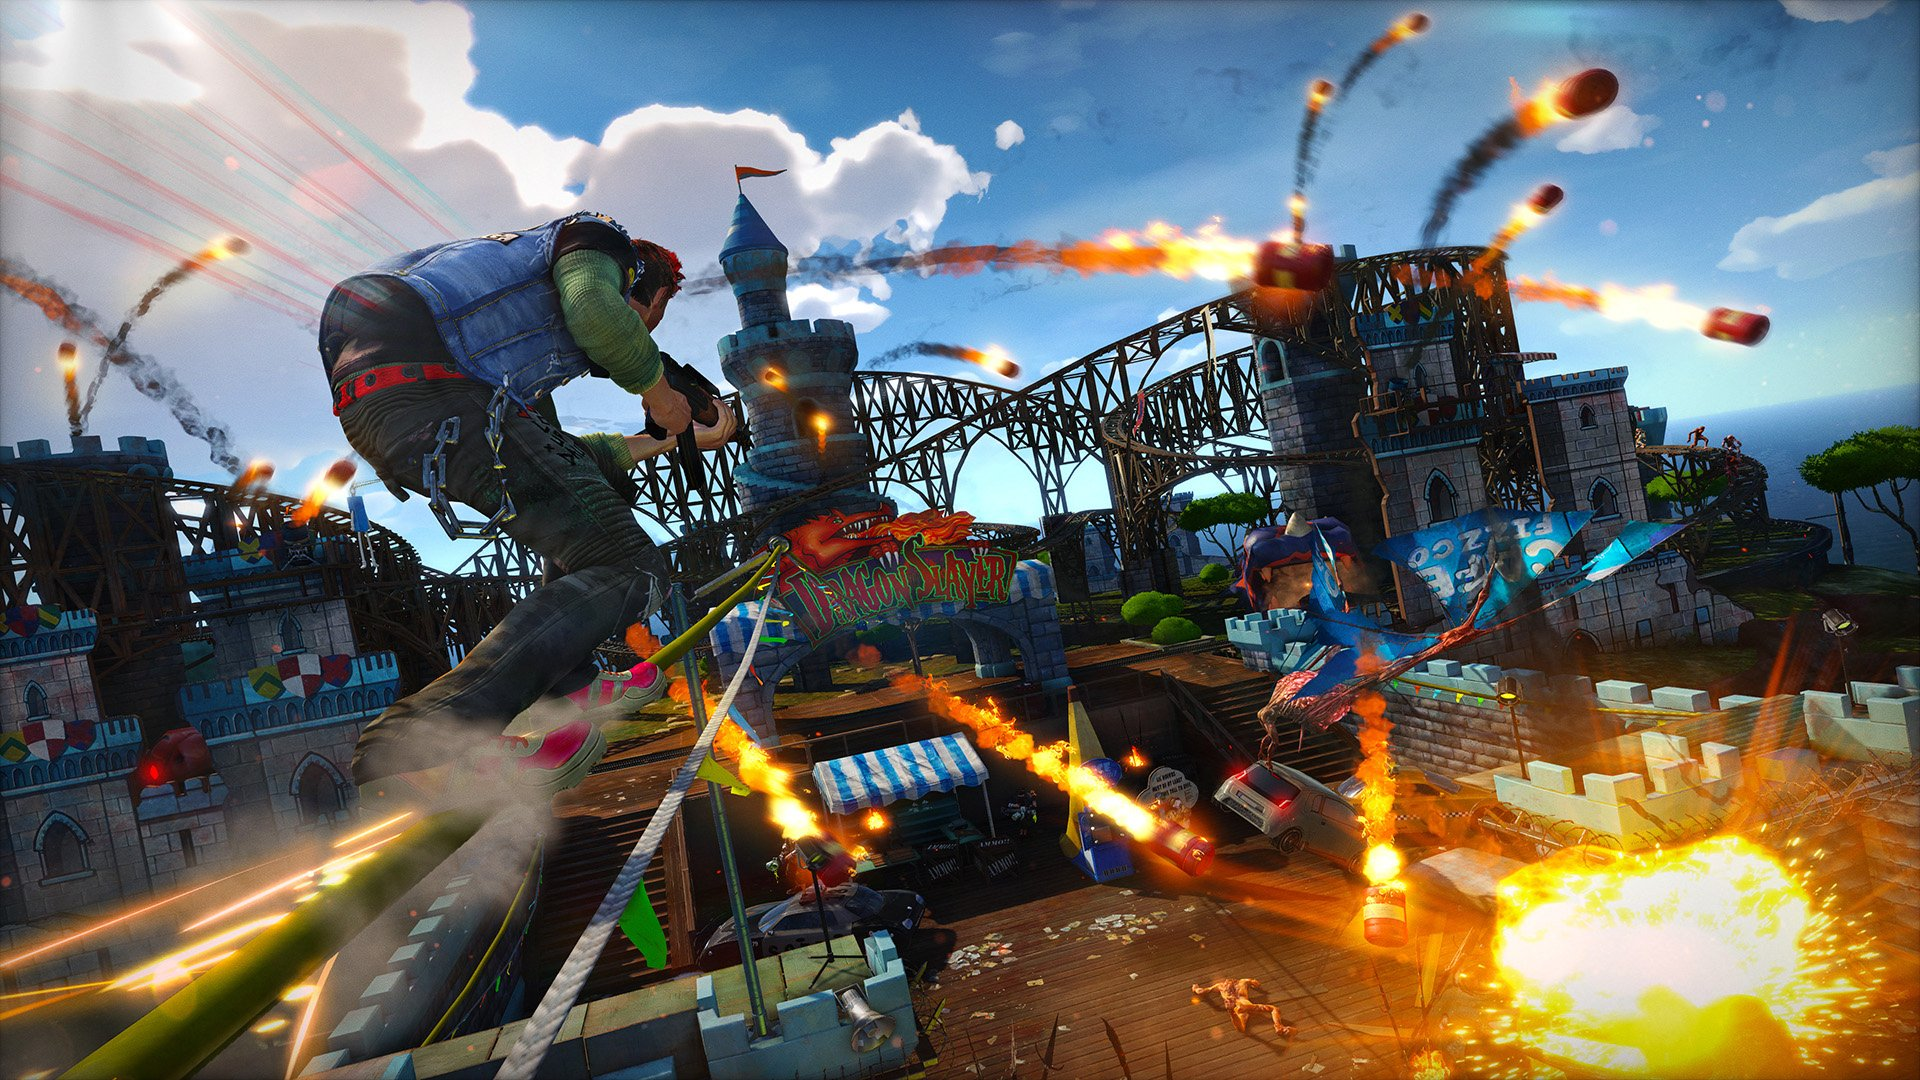 Sony owns Sunset Overdrive now